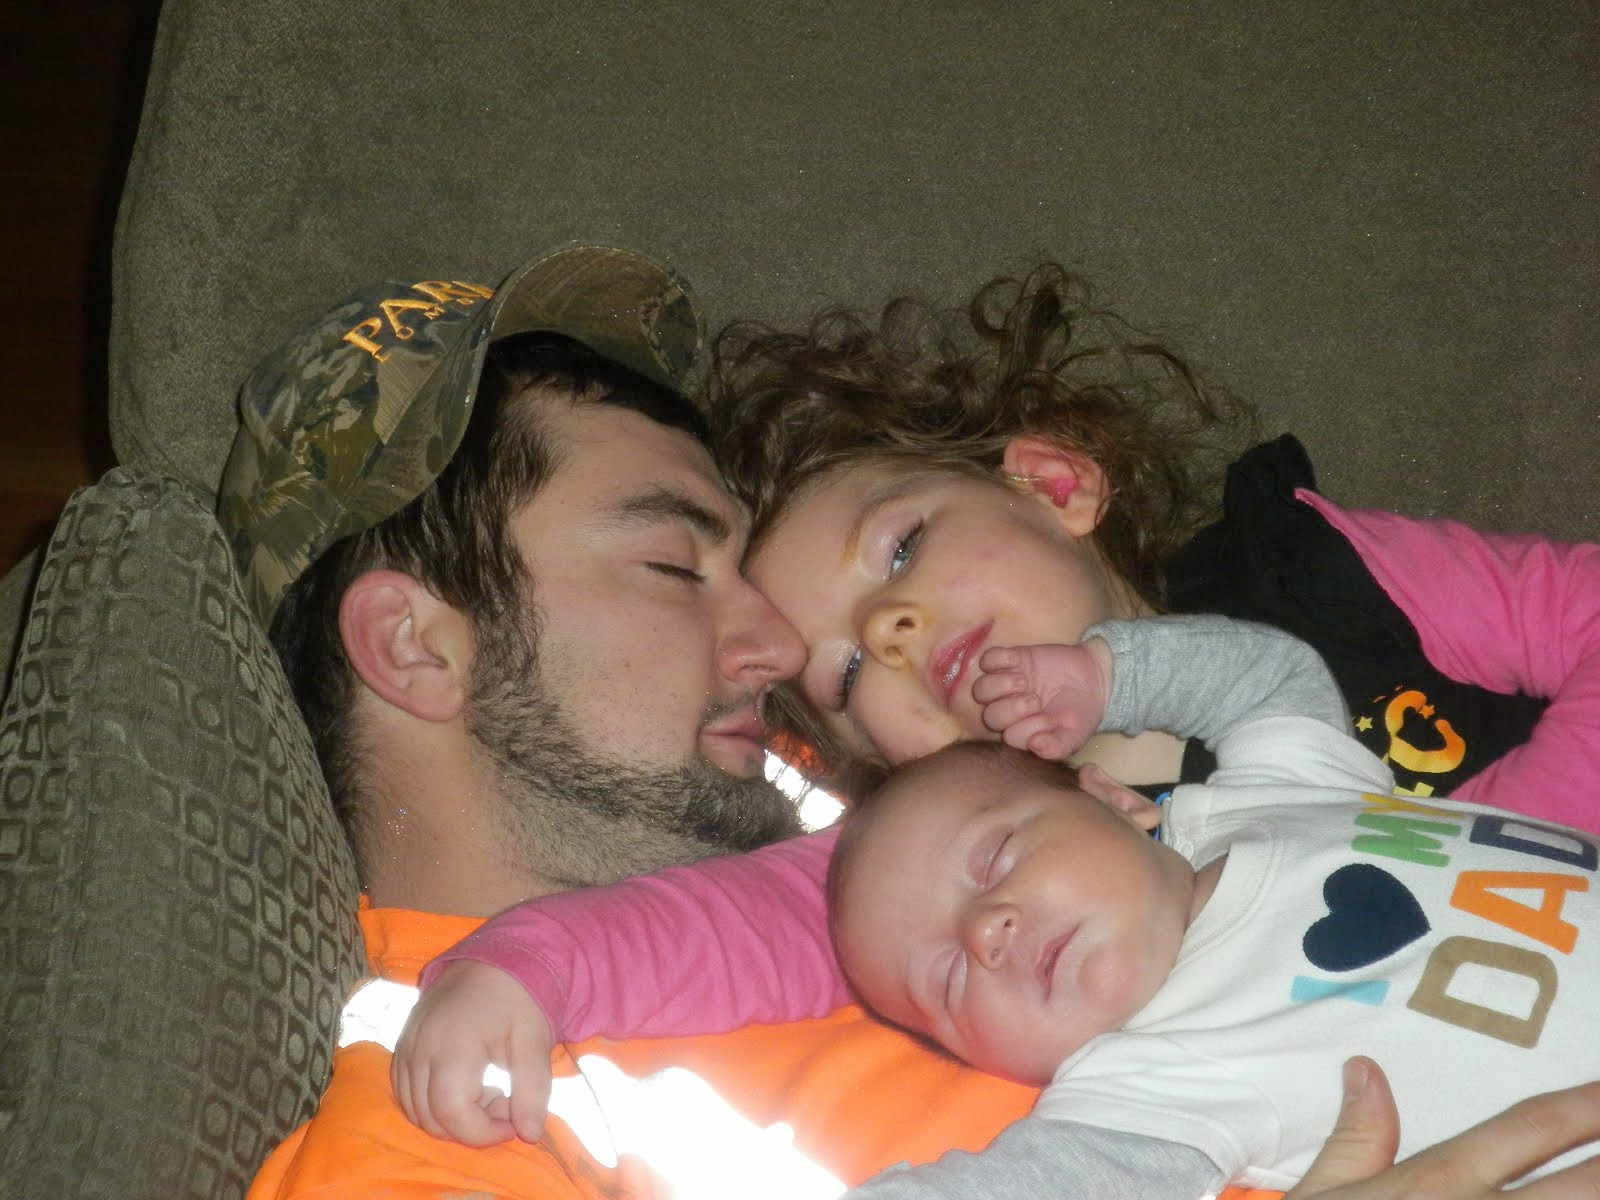 2012: Naptime, except for Aimee